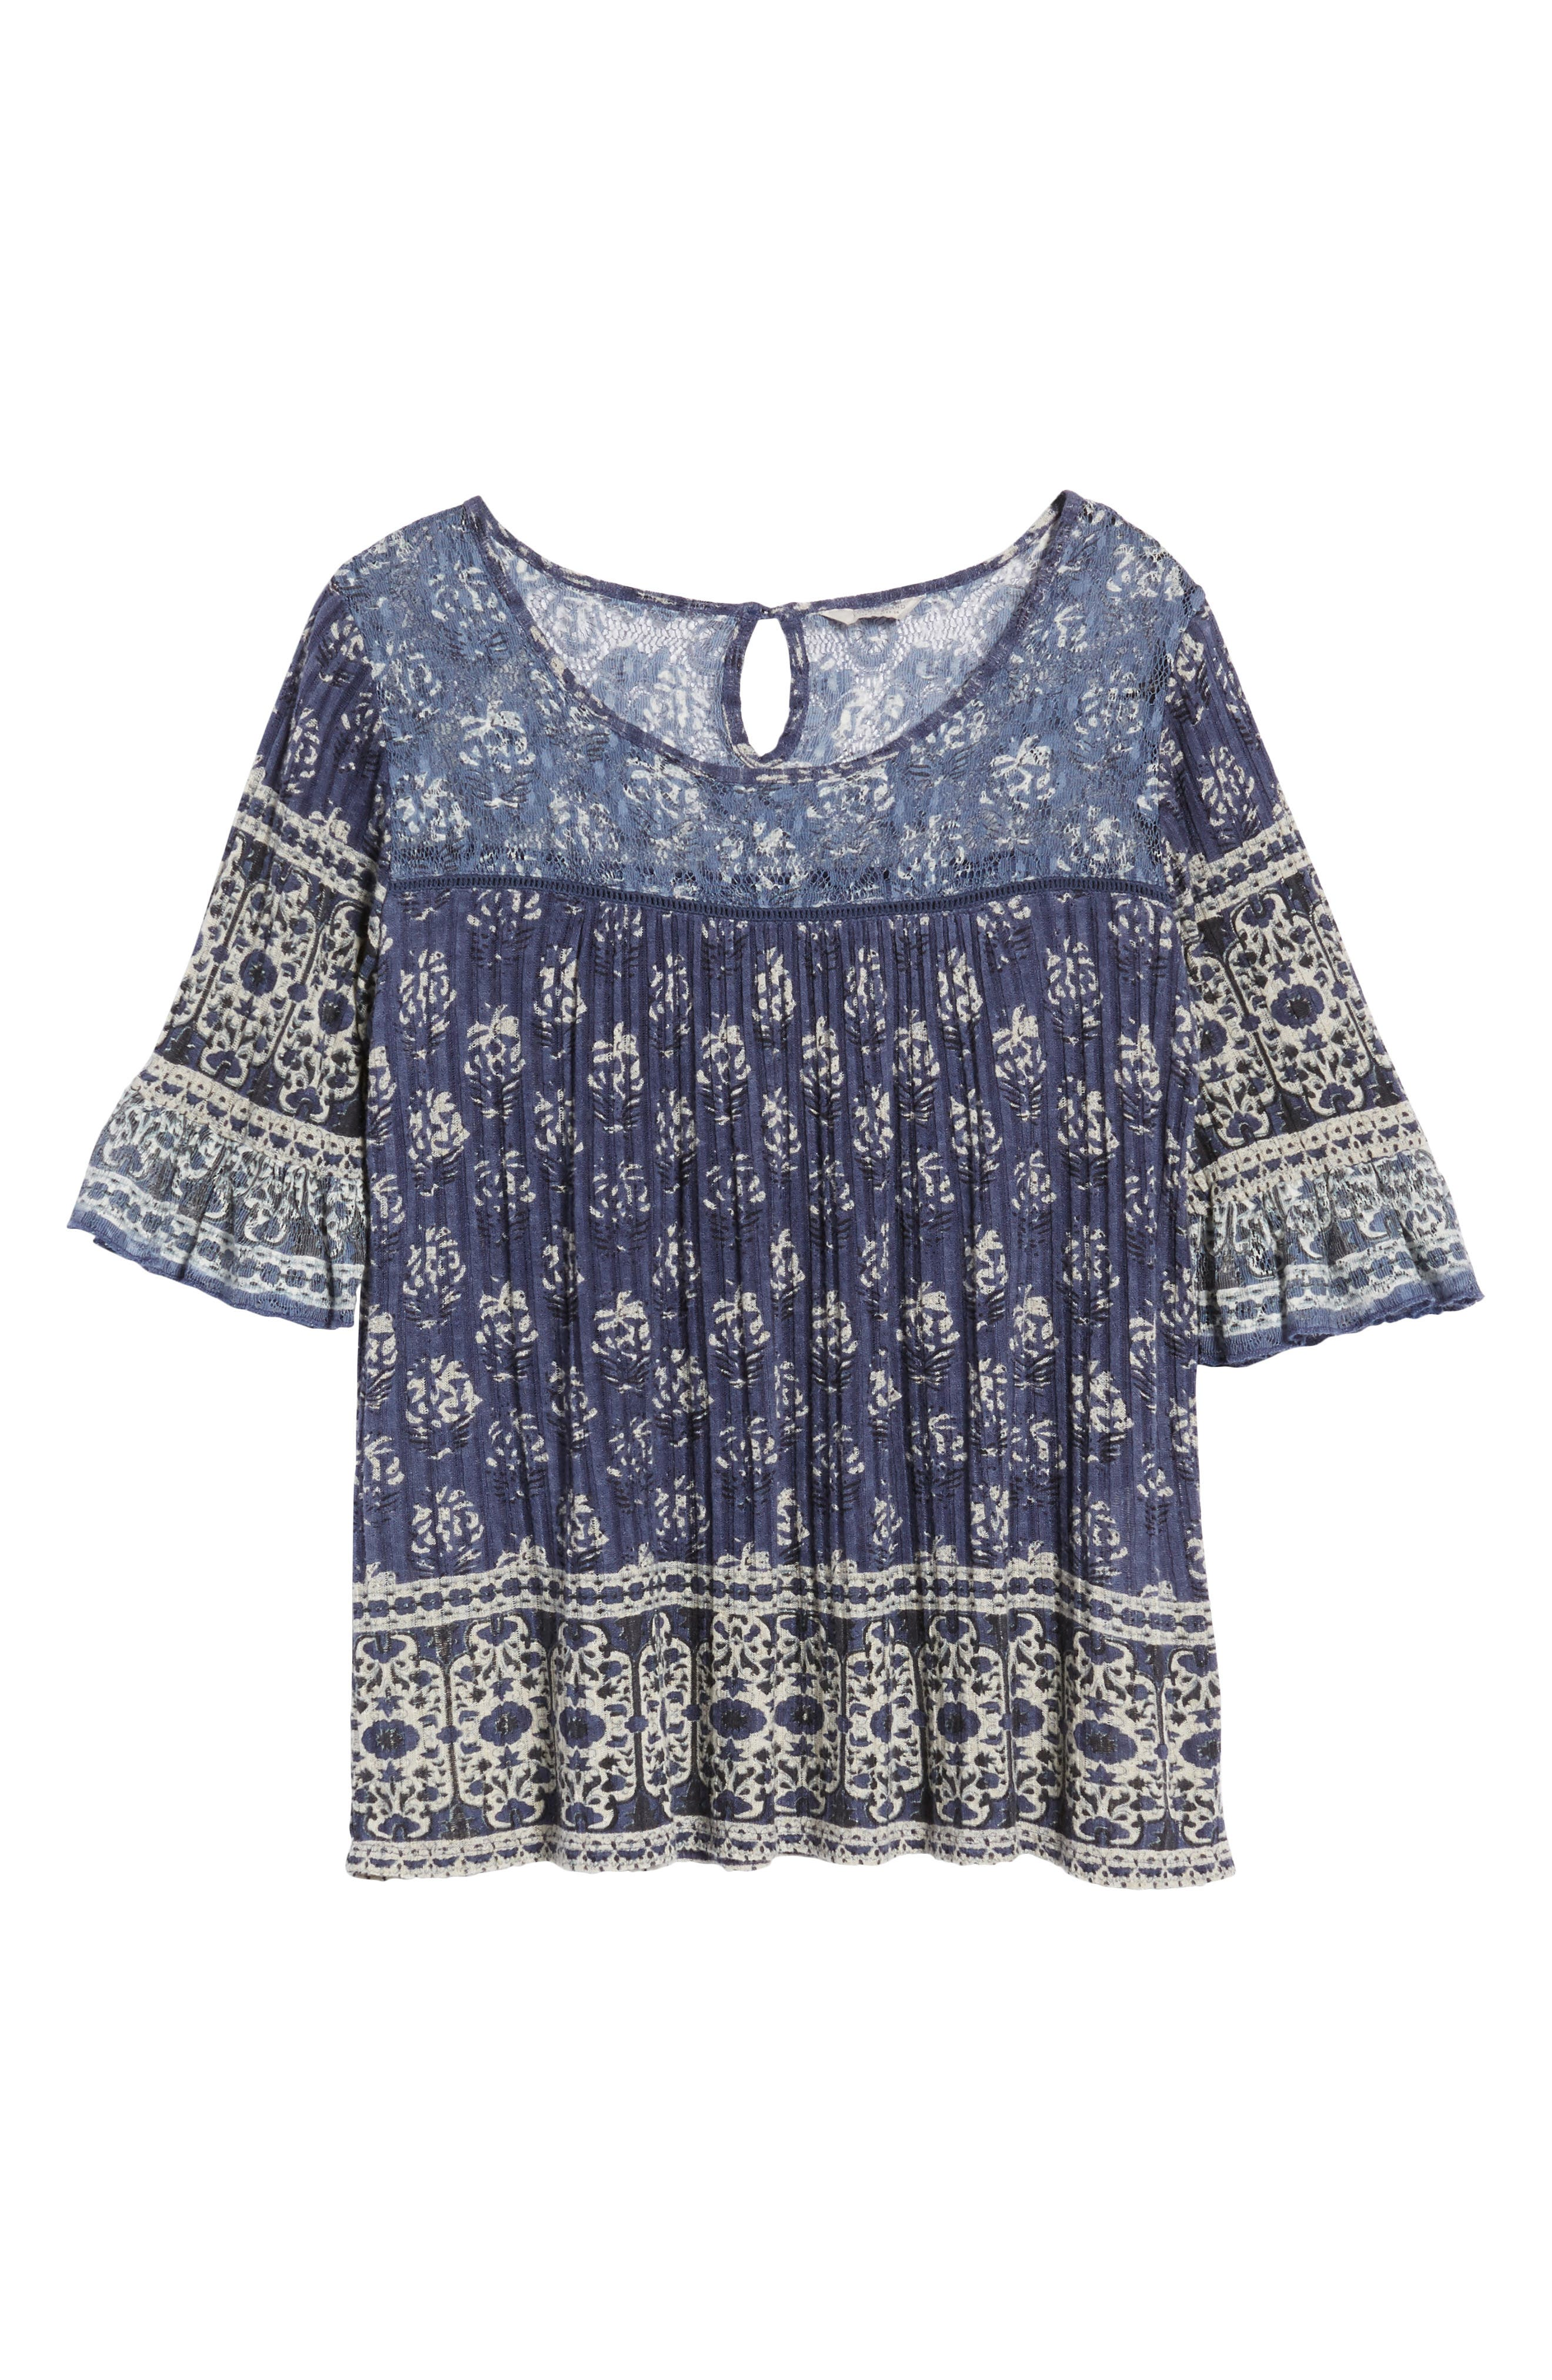 Blue and White Bell Sleeve Top,                             Alternate thumbnail 6, color,                             460